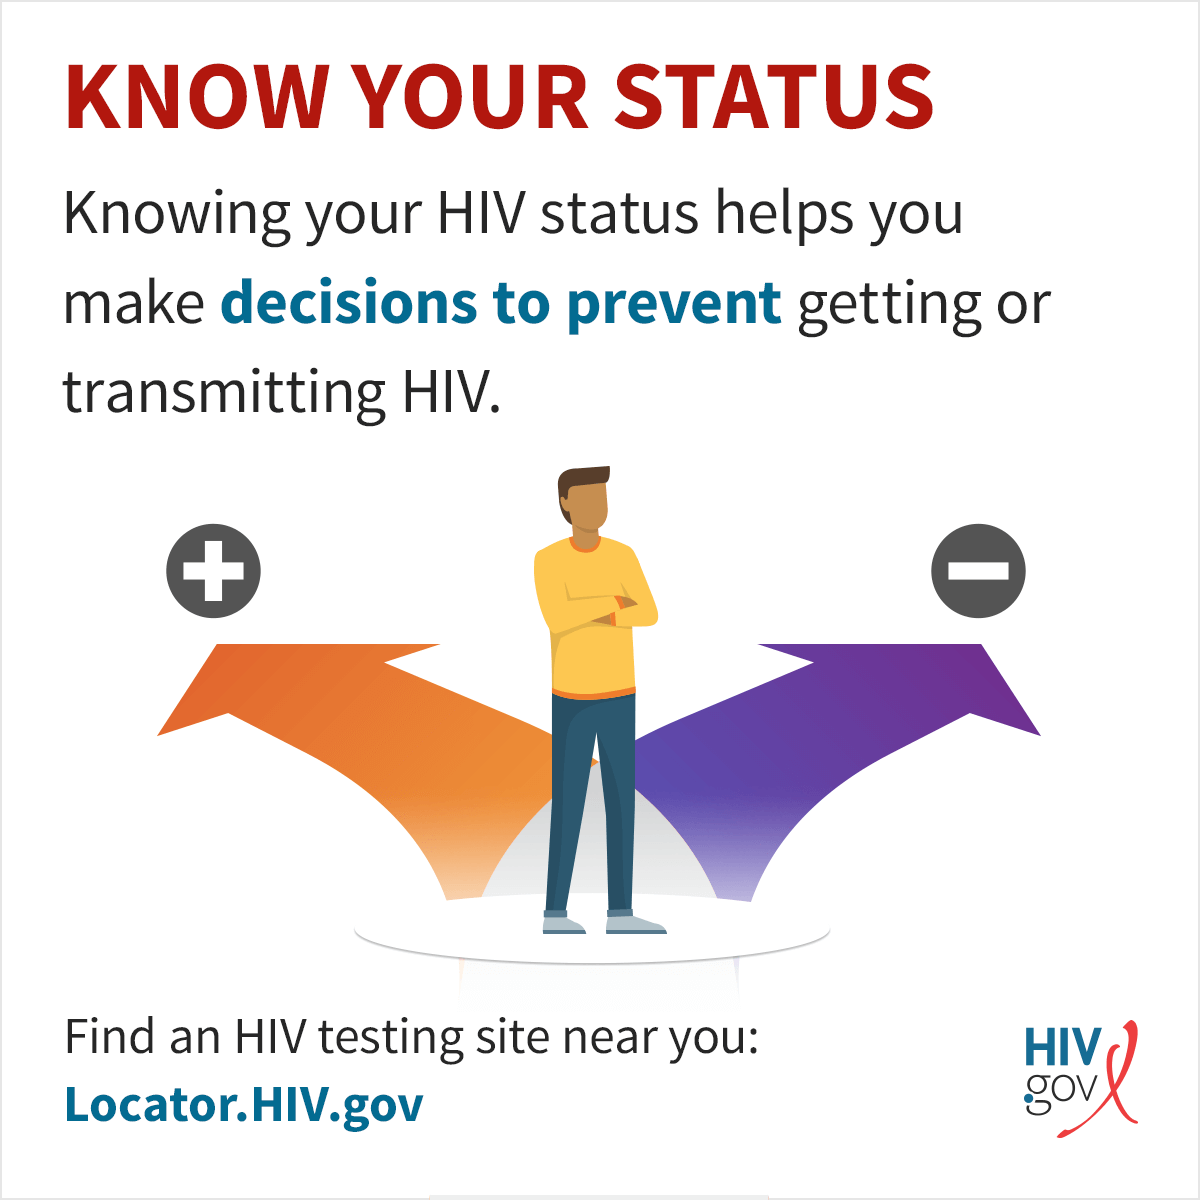 Knowing your HIV status helps you make decisions to prevent getting or transmitting HIV.